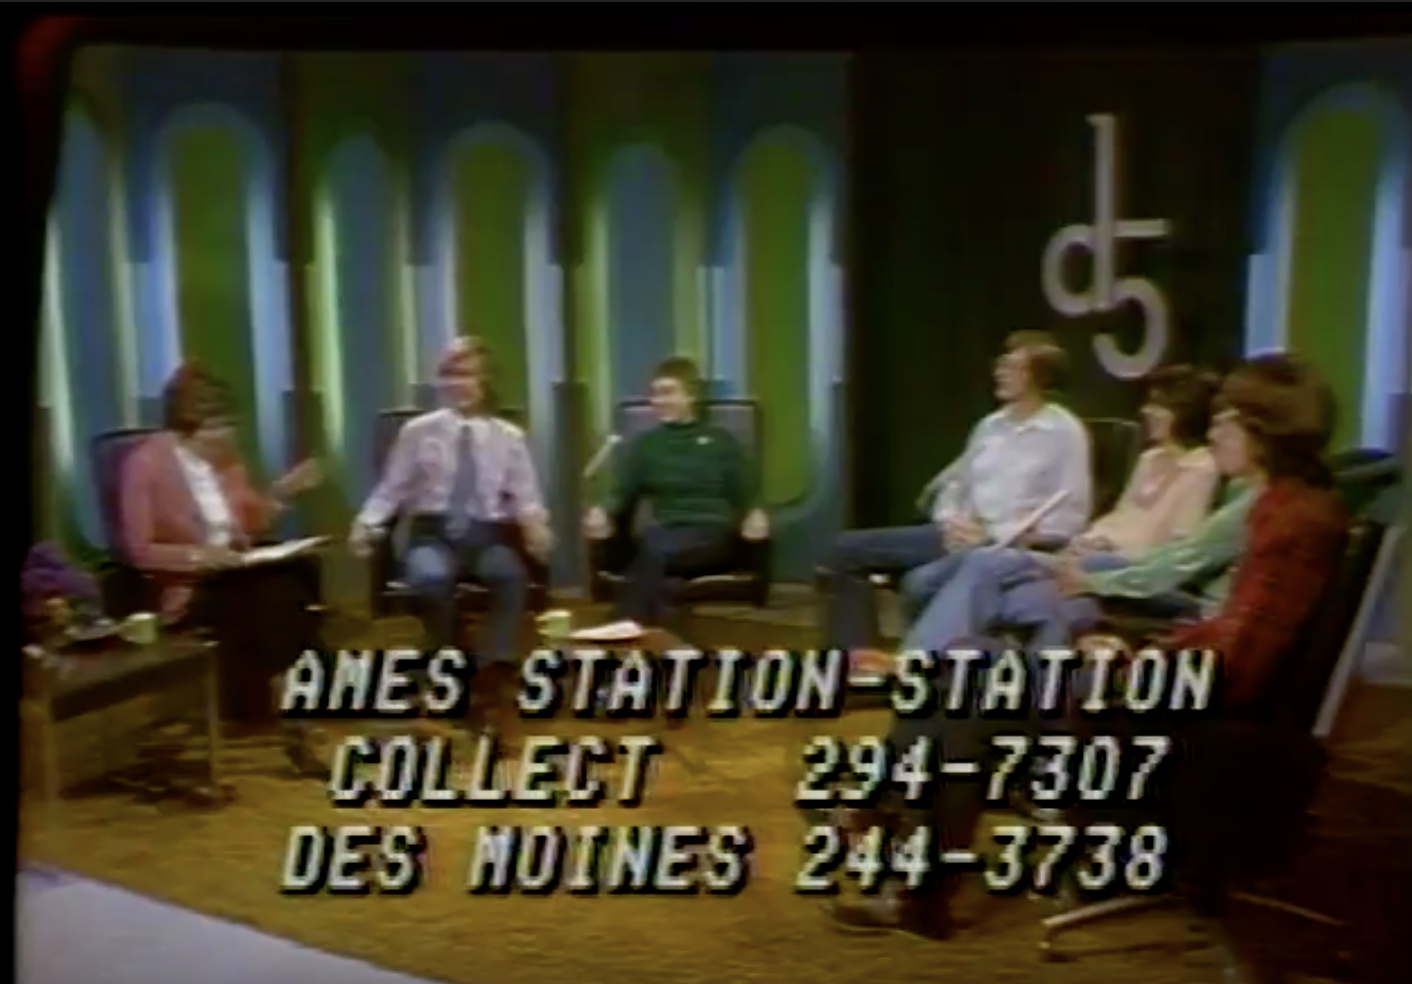 Screenshot from the video entitled Dimension 5: Gay People Alliance, time 1:39. Carolyn Czerna, Karen Moore, Kay Scott, Connie Tanzo, Steve Court, Jim Osler, David Windom, and Dennis Brumm being introduced. Follow the URL in the caption to see this moment in the video.